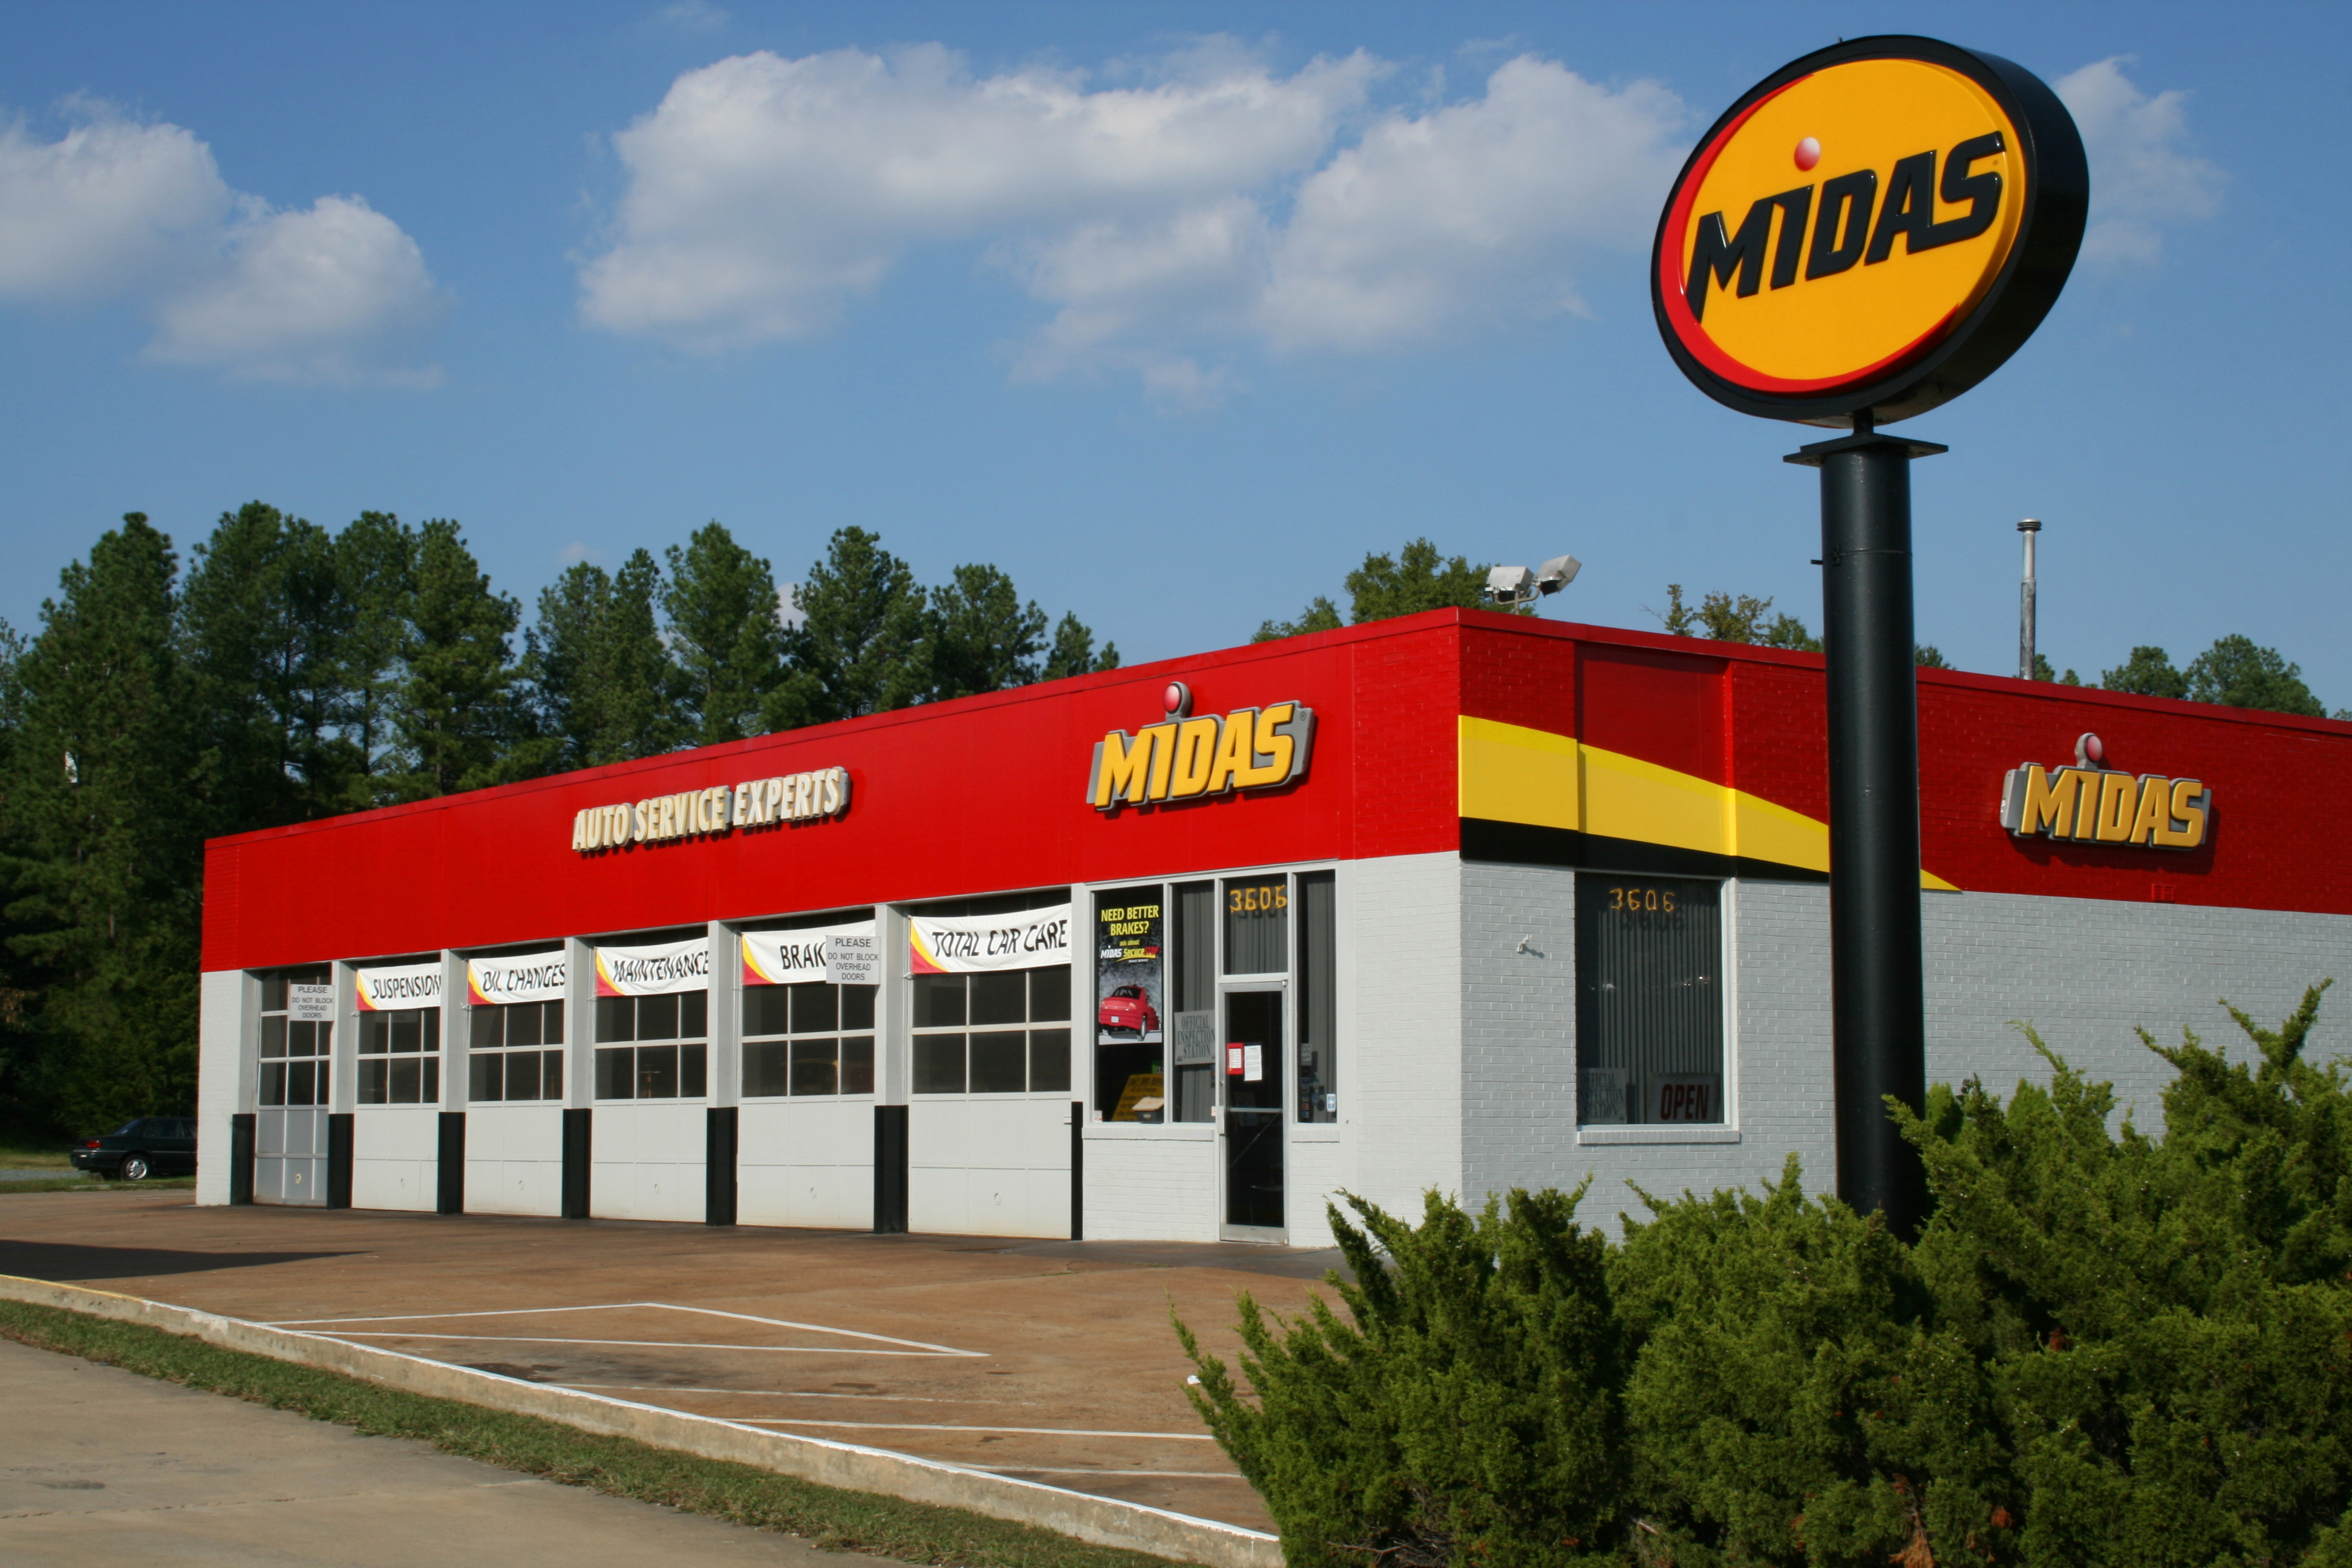 Garage Experts Chapel Hill File 2008 10 05 Midas Auto Service Experts In Durham Jpg